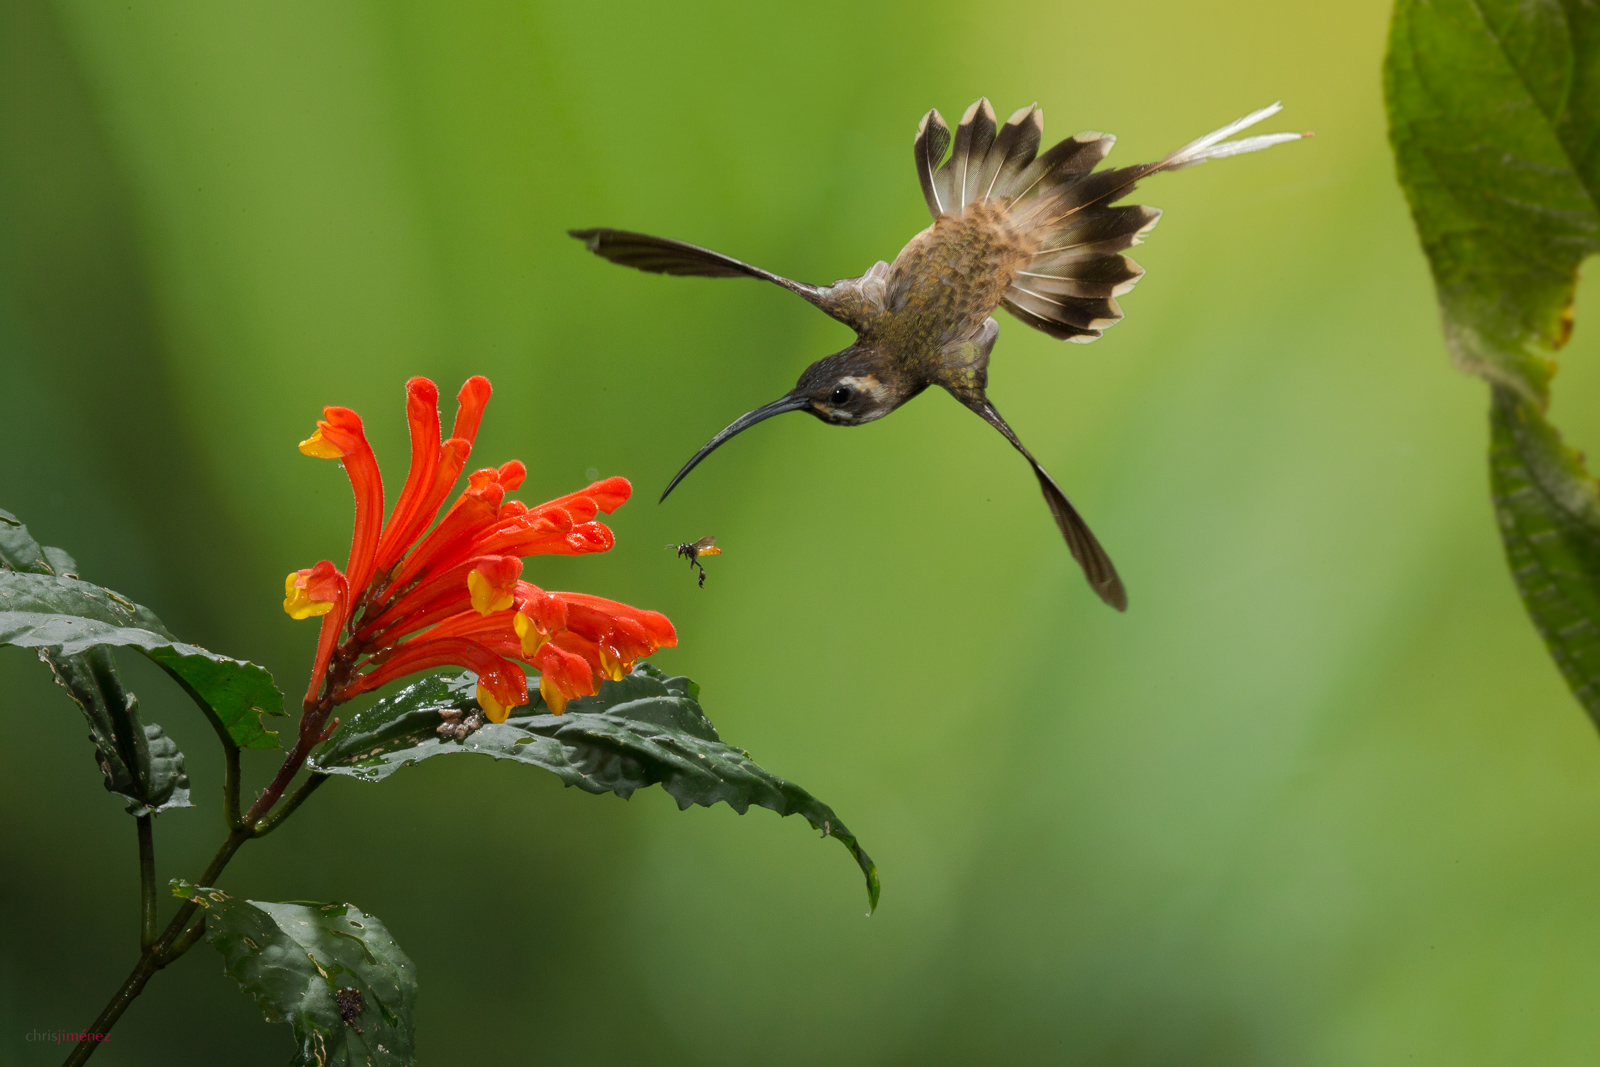 Long-billed Hermit (Phaethornis longirostris) feeding from flowers in flight at the lowlands of Costa Rica